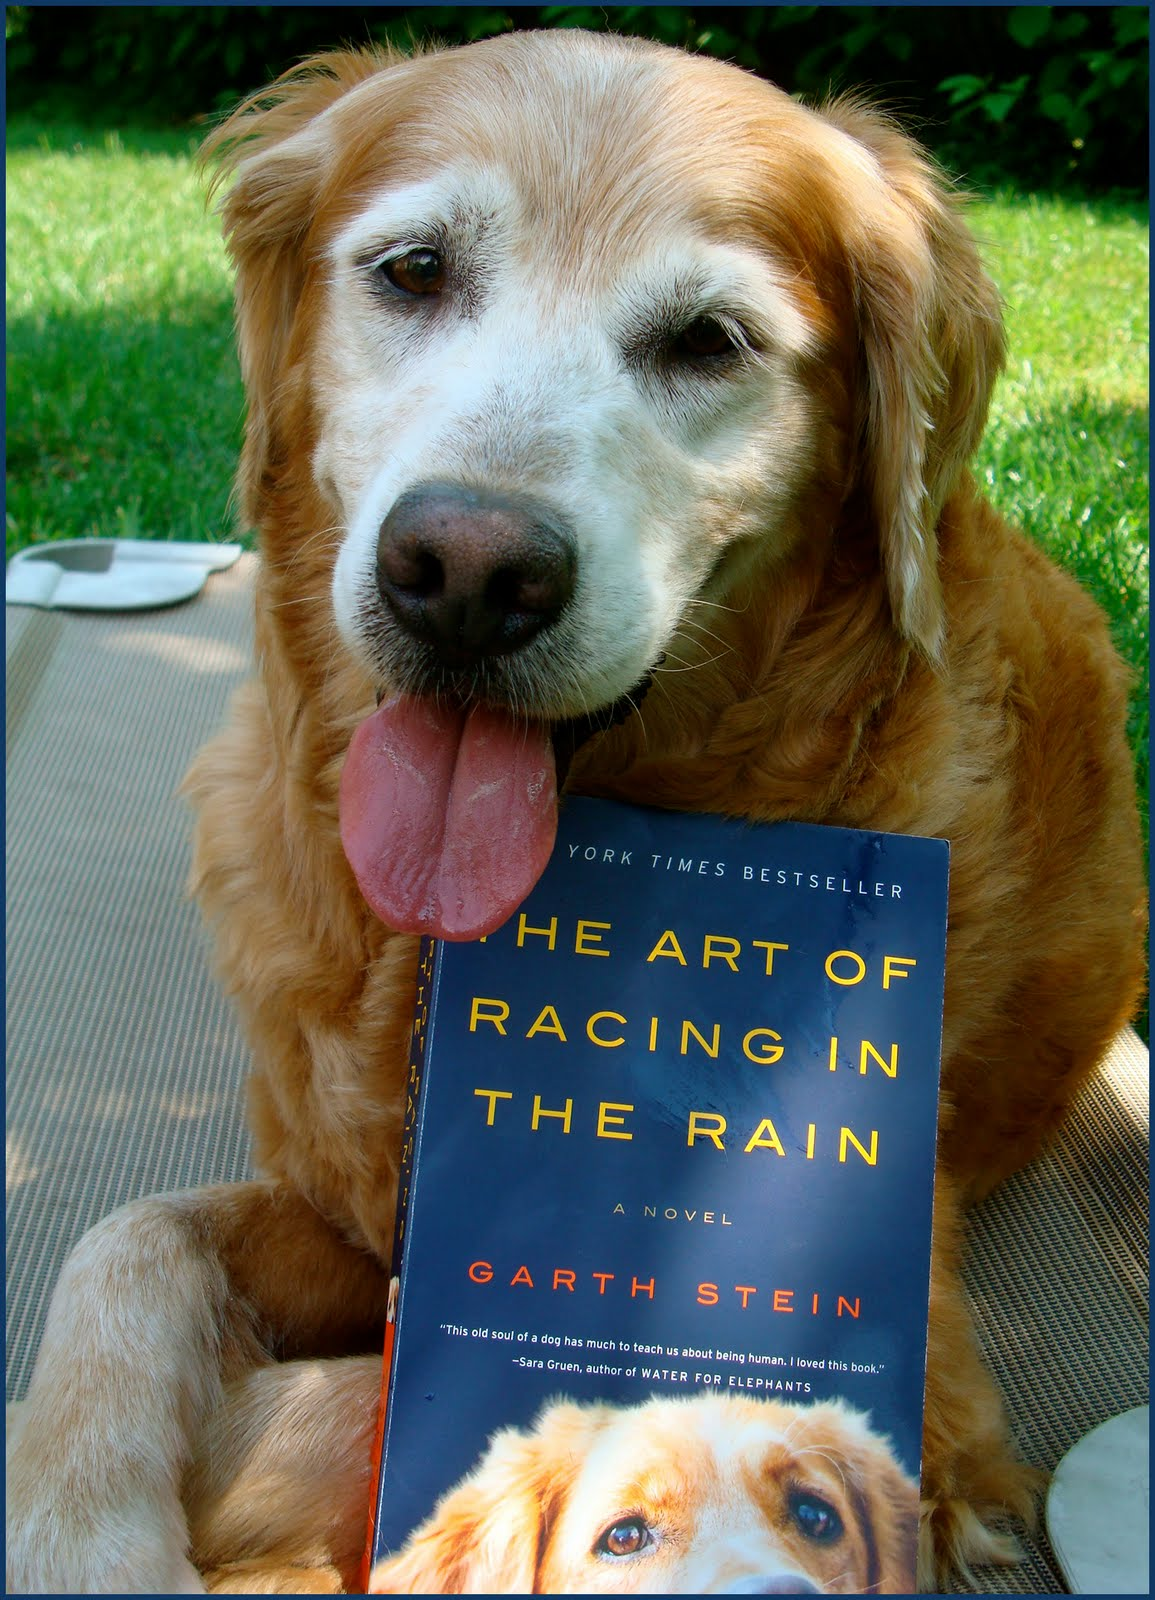 The Art Of Racing In The Rain: Book Review/Giveaway: The Art Of Racing In The Rain